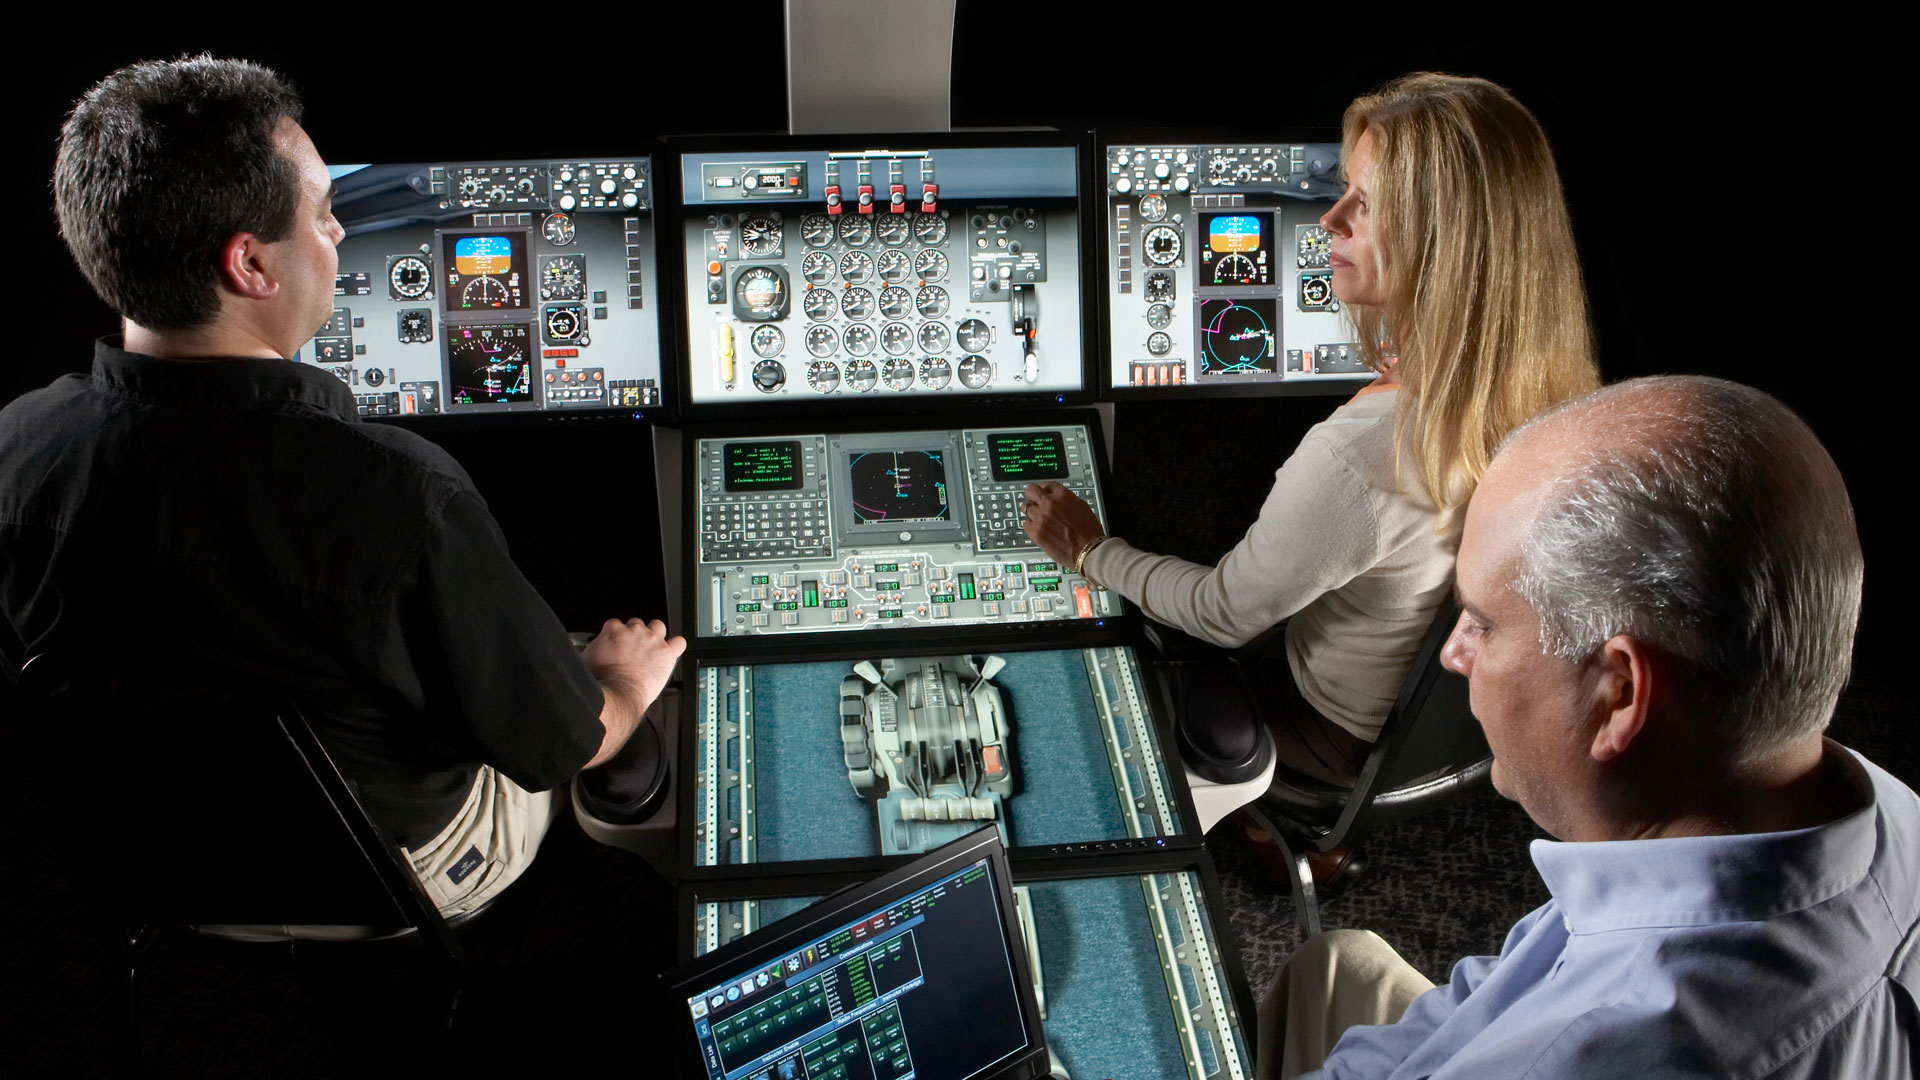 Employees learning flight deck training